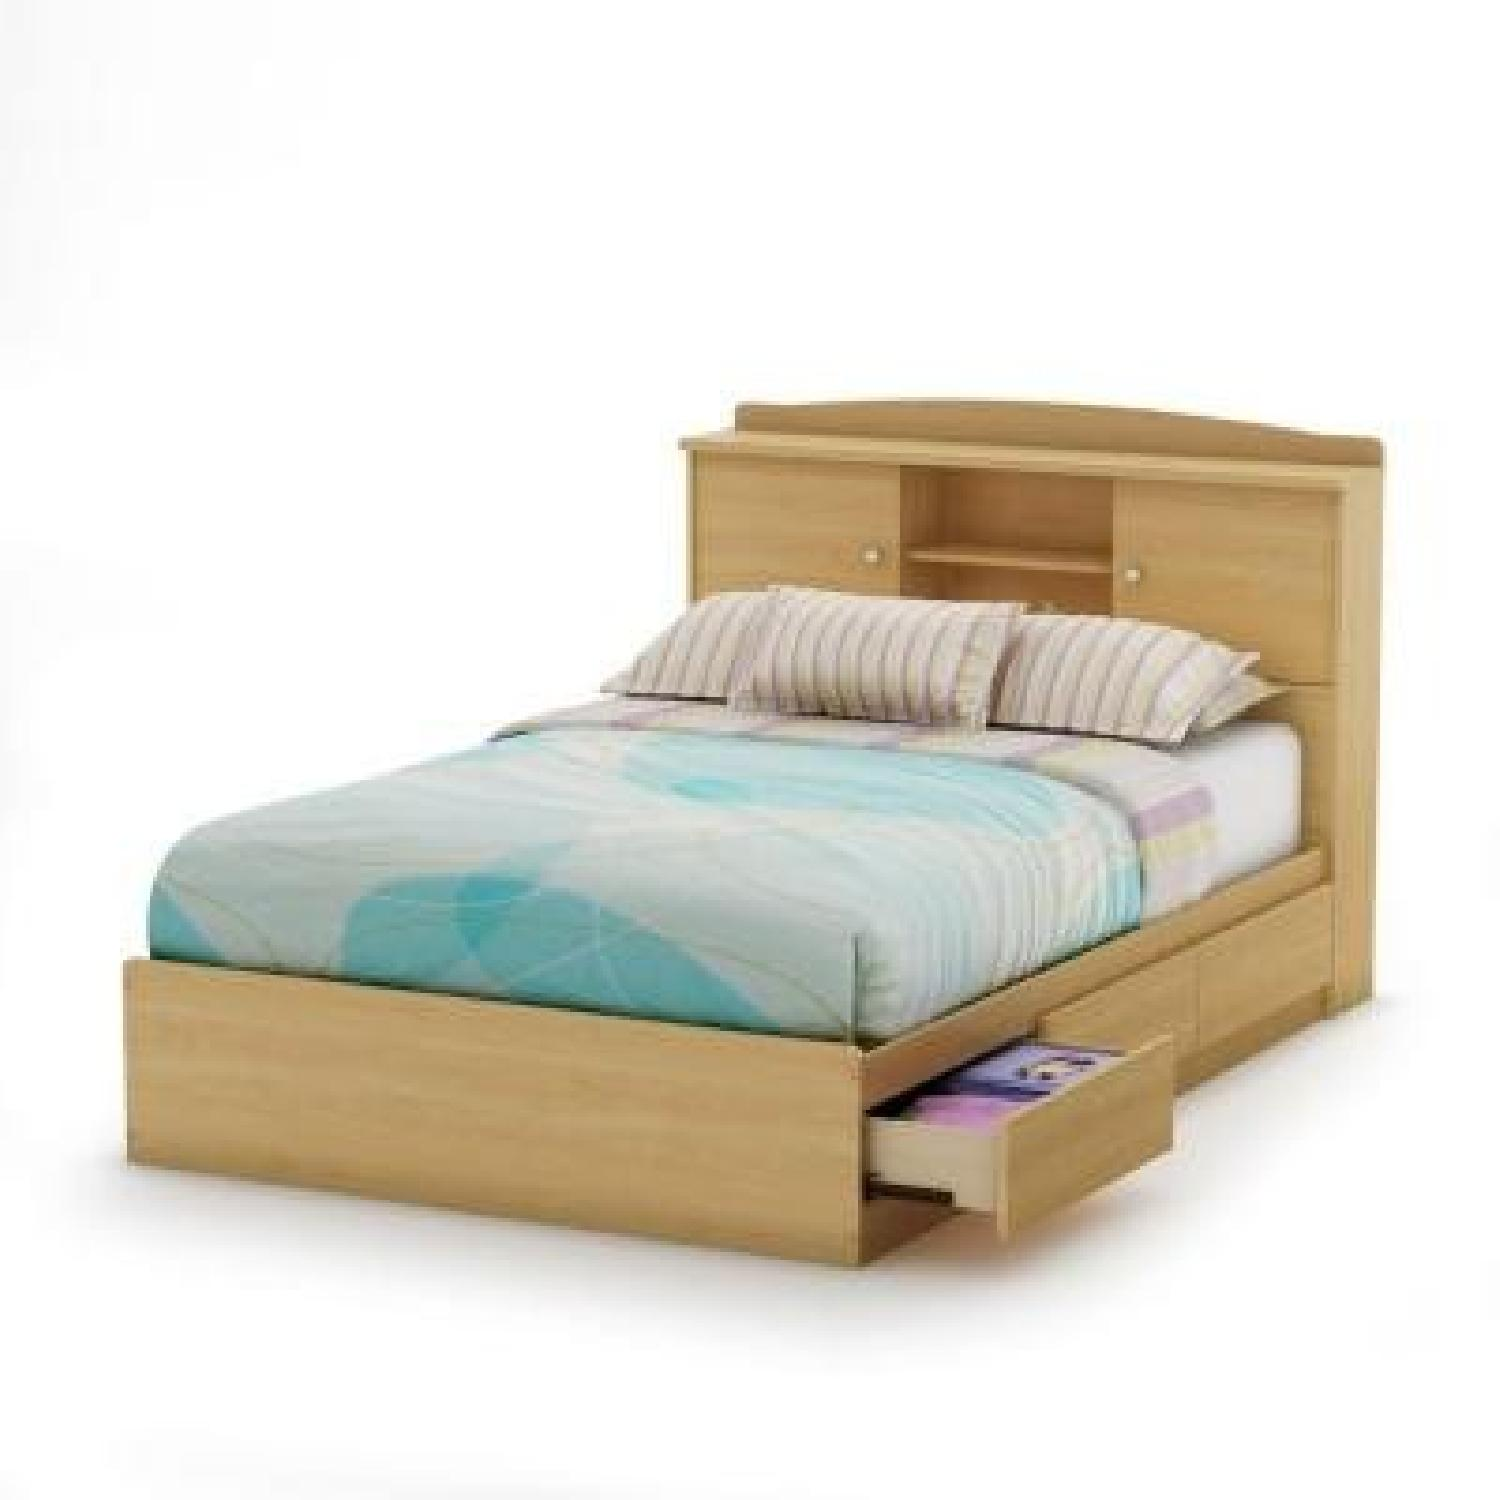 South Shore Furniture Full-Size Storage Bed in Natural Maple - image-1